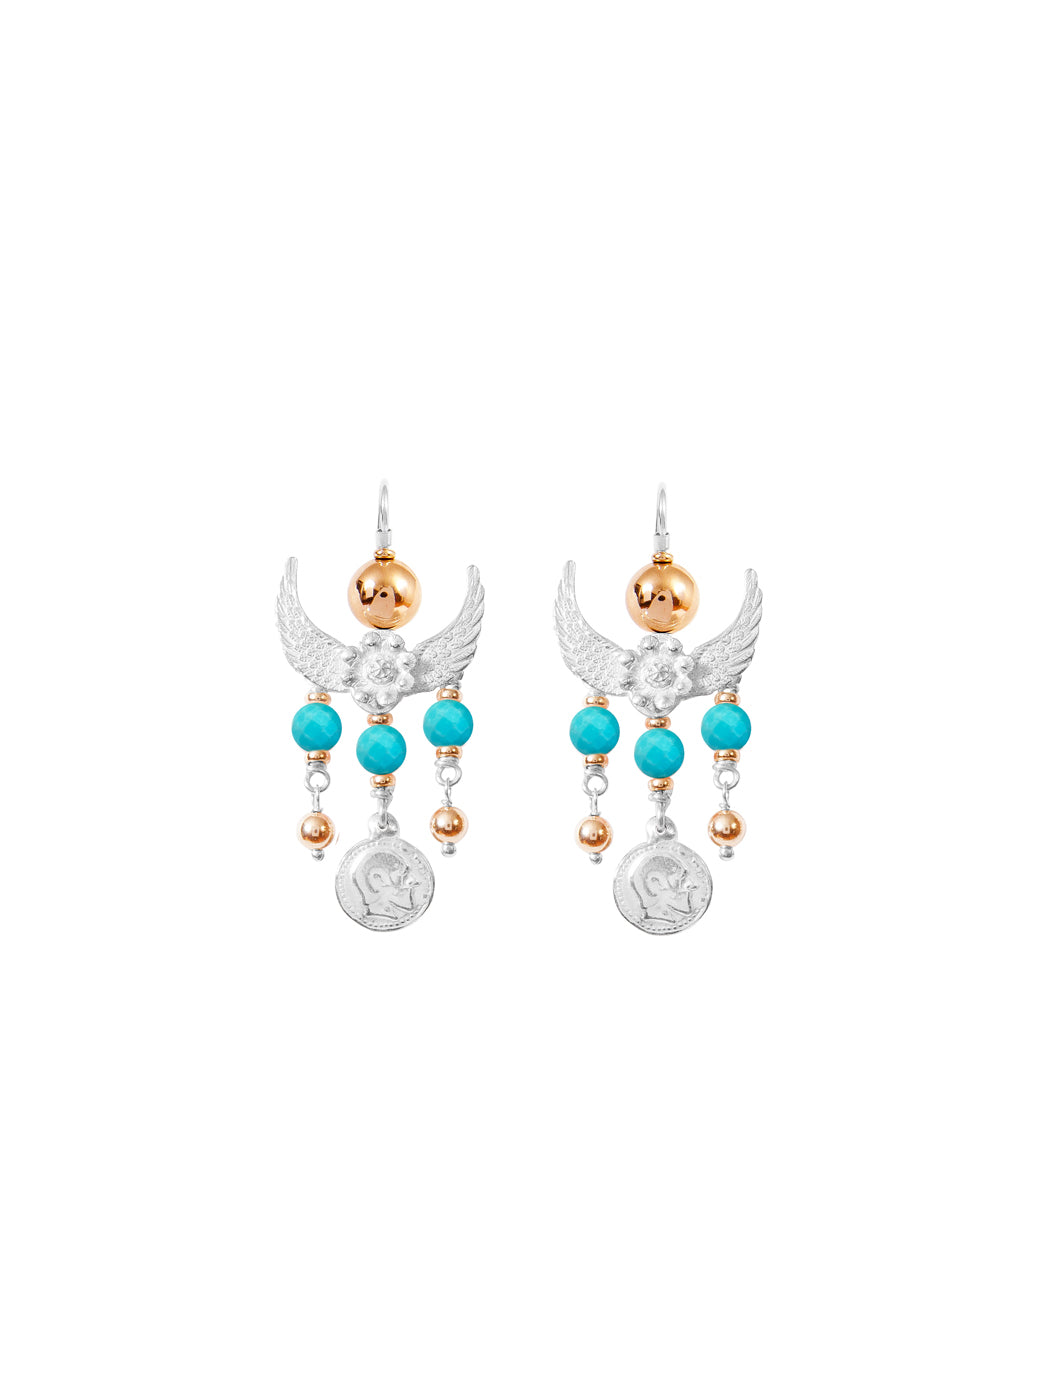 Gypset Earrings